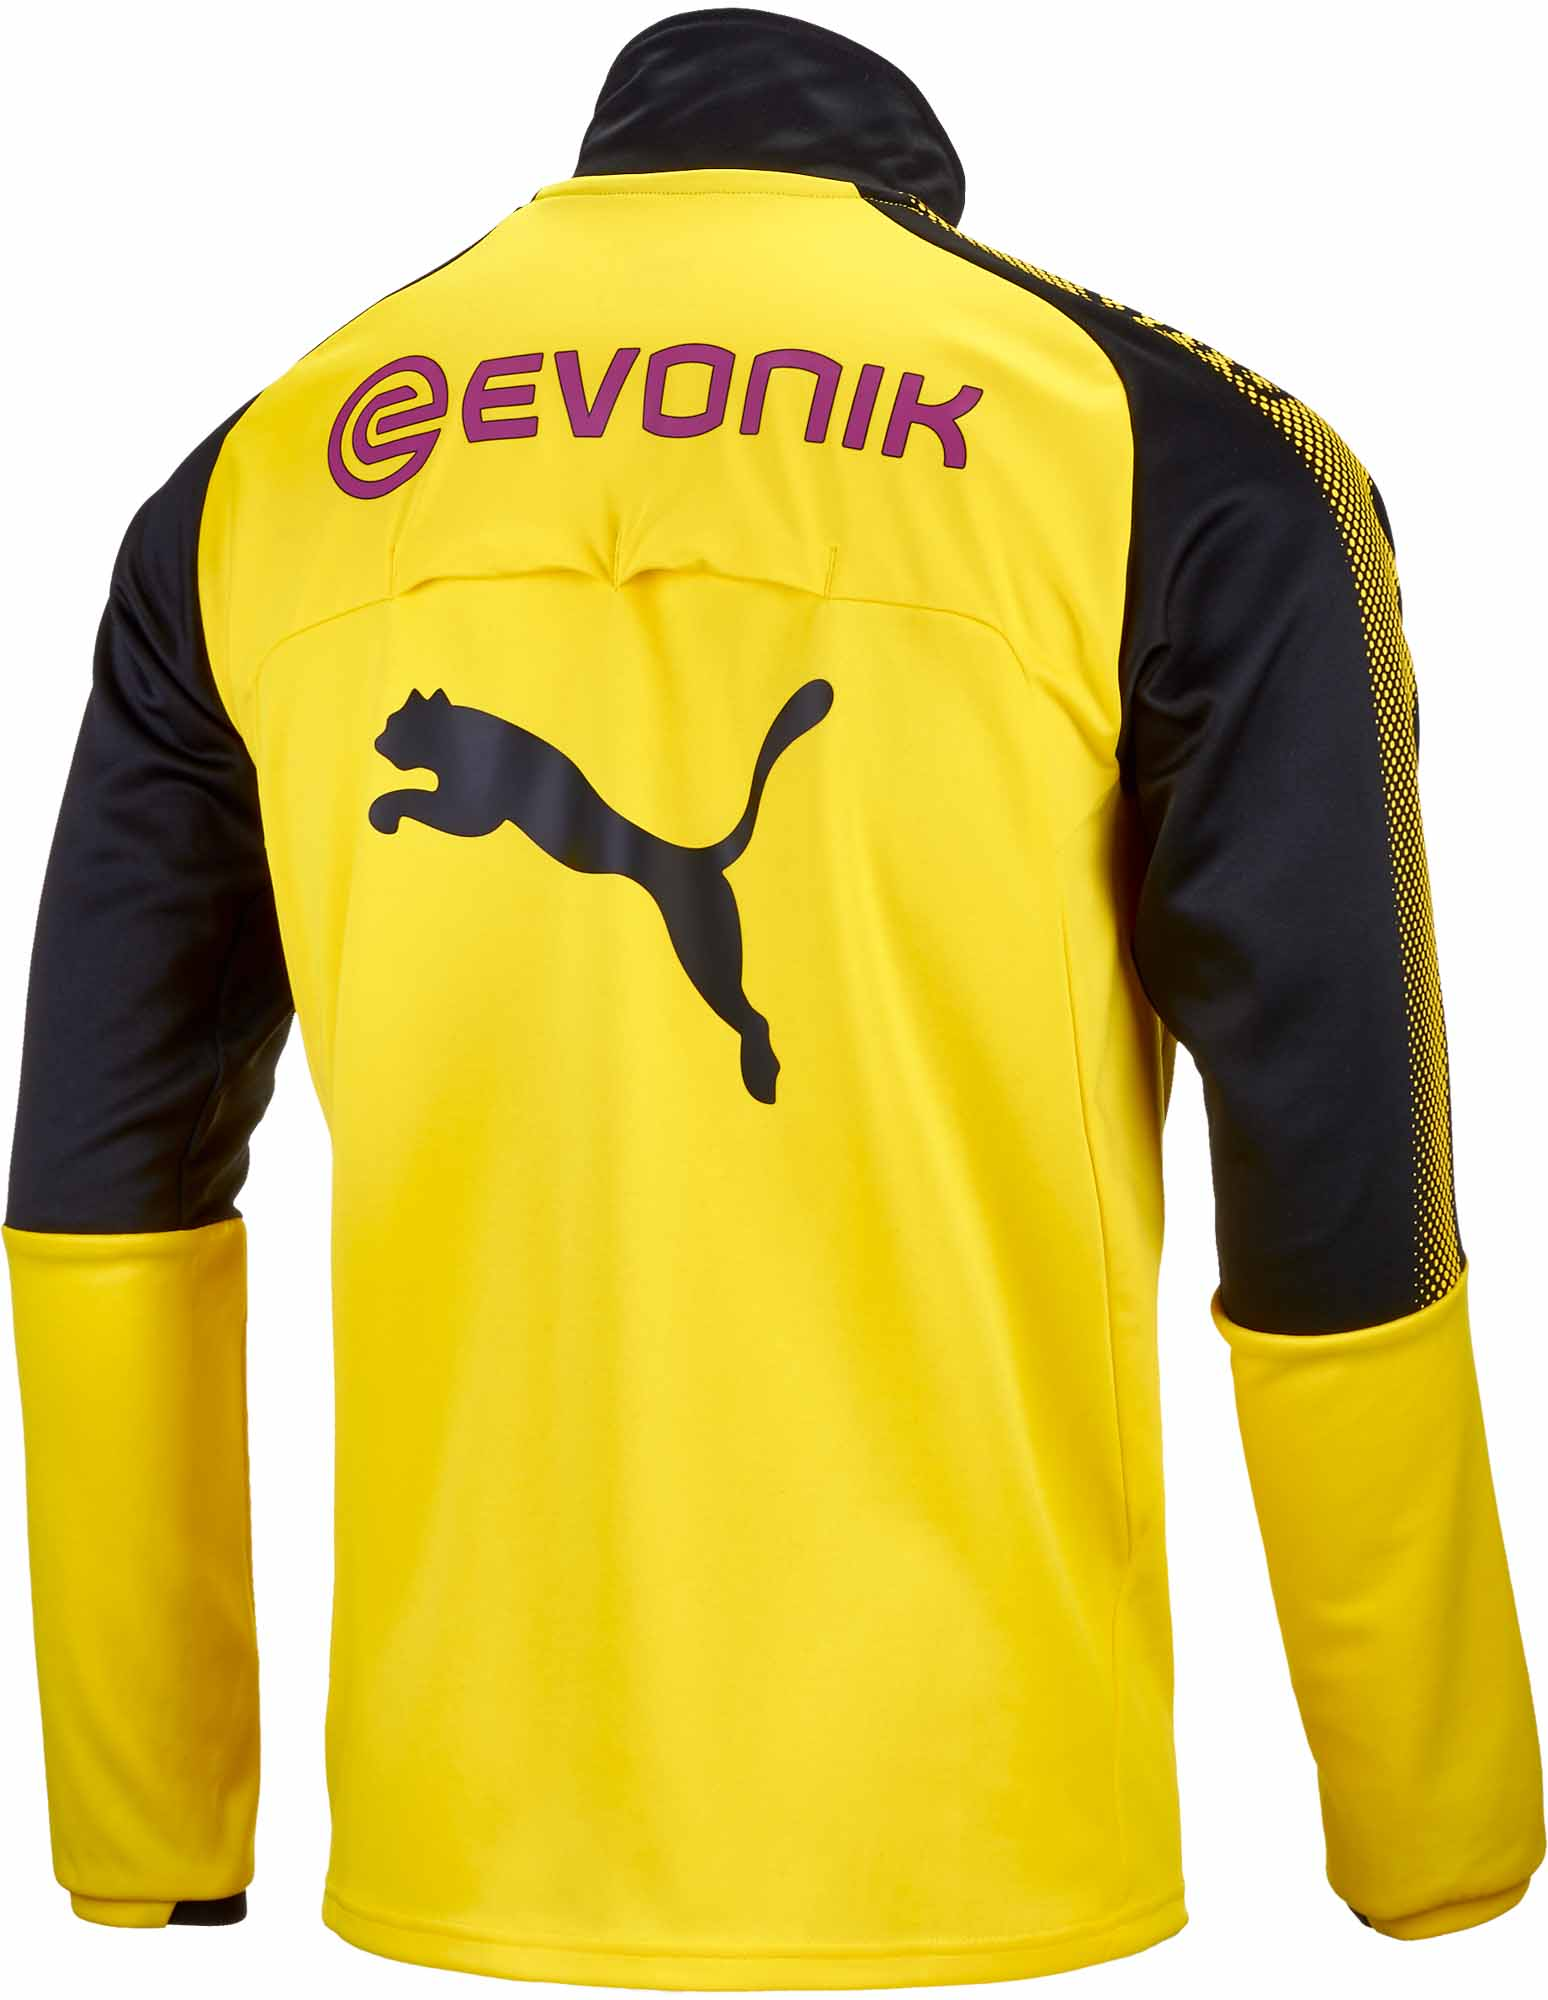 196355f19 Puma Borussia Dortmund 1 4 Zip Training Top – Cyber Yellow Black